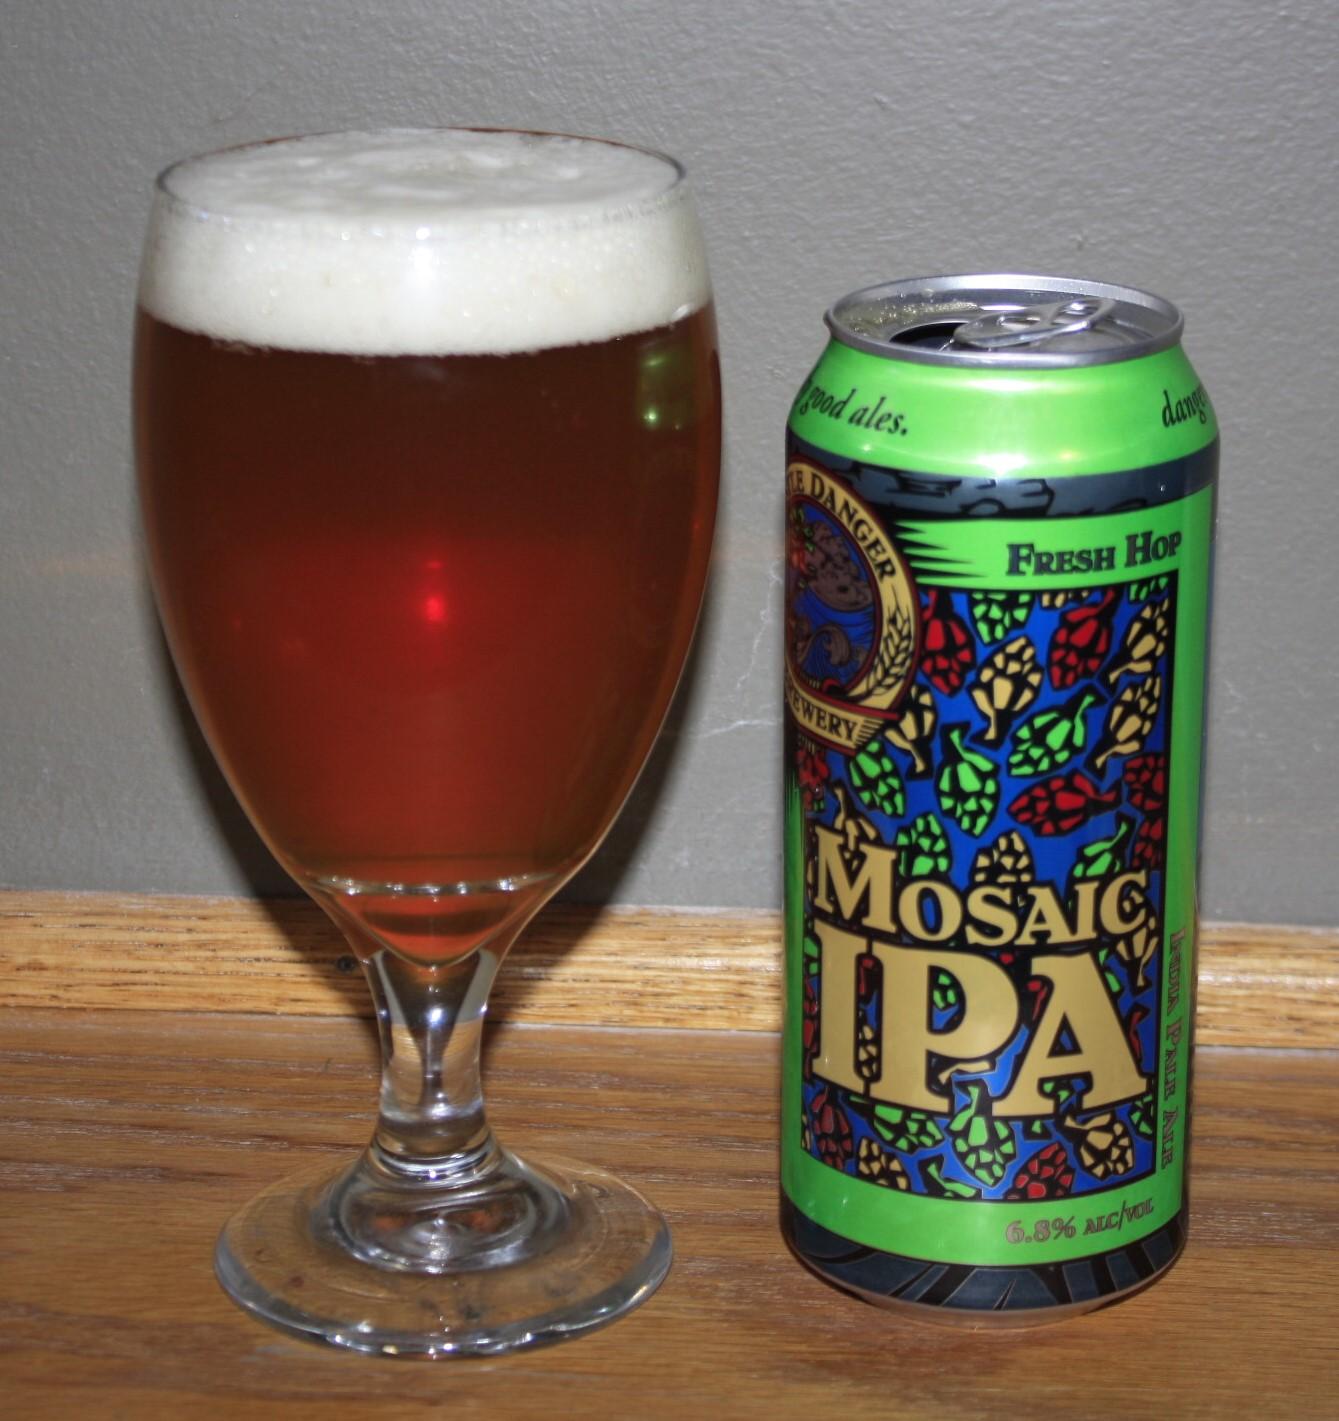 Name: Castle Danger Mosaic Fresh Hop IPA Style: India Pale Ale ABV: 6.8%